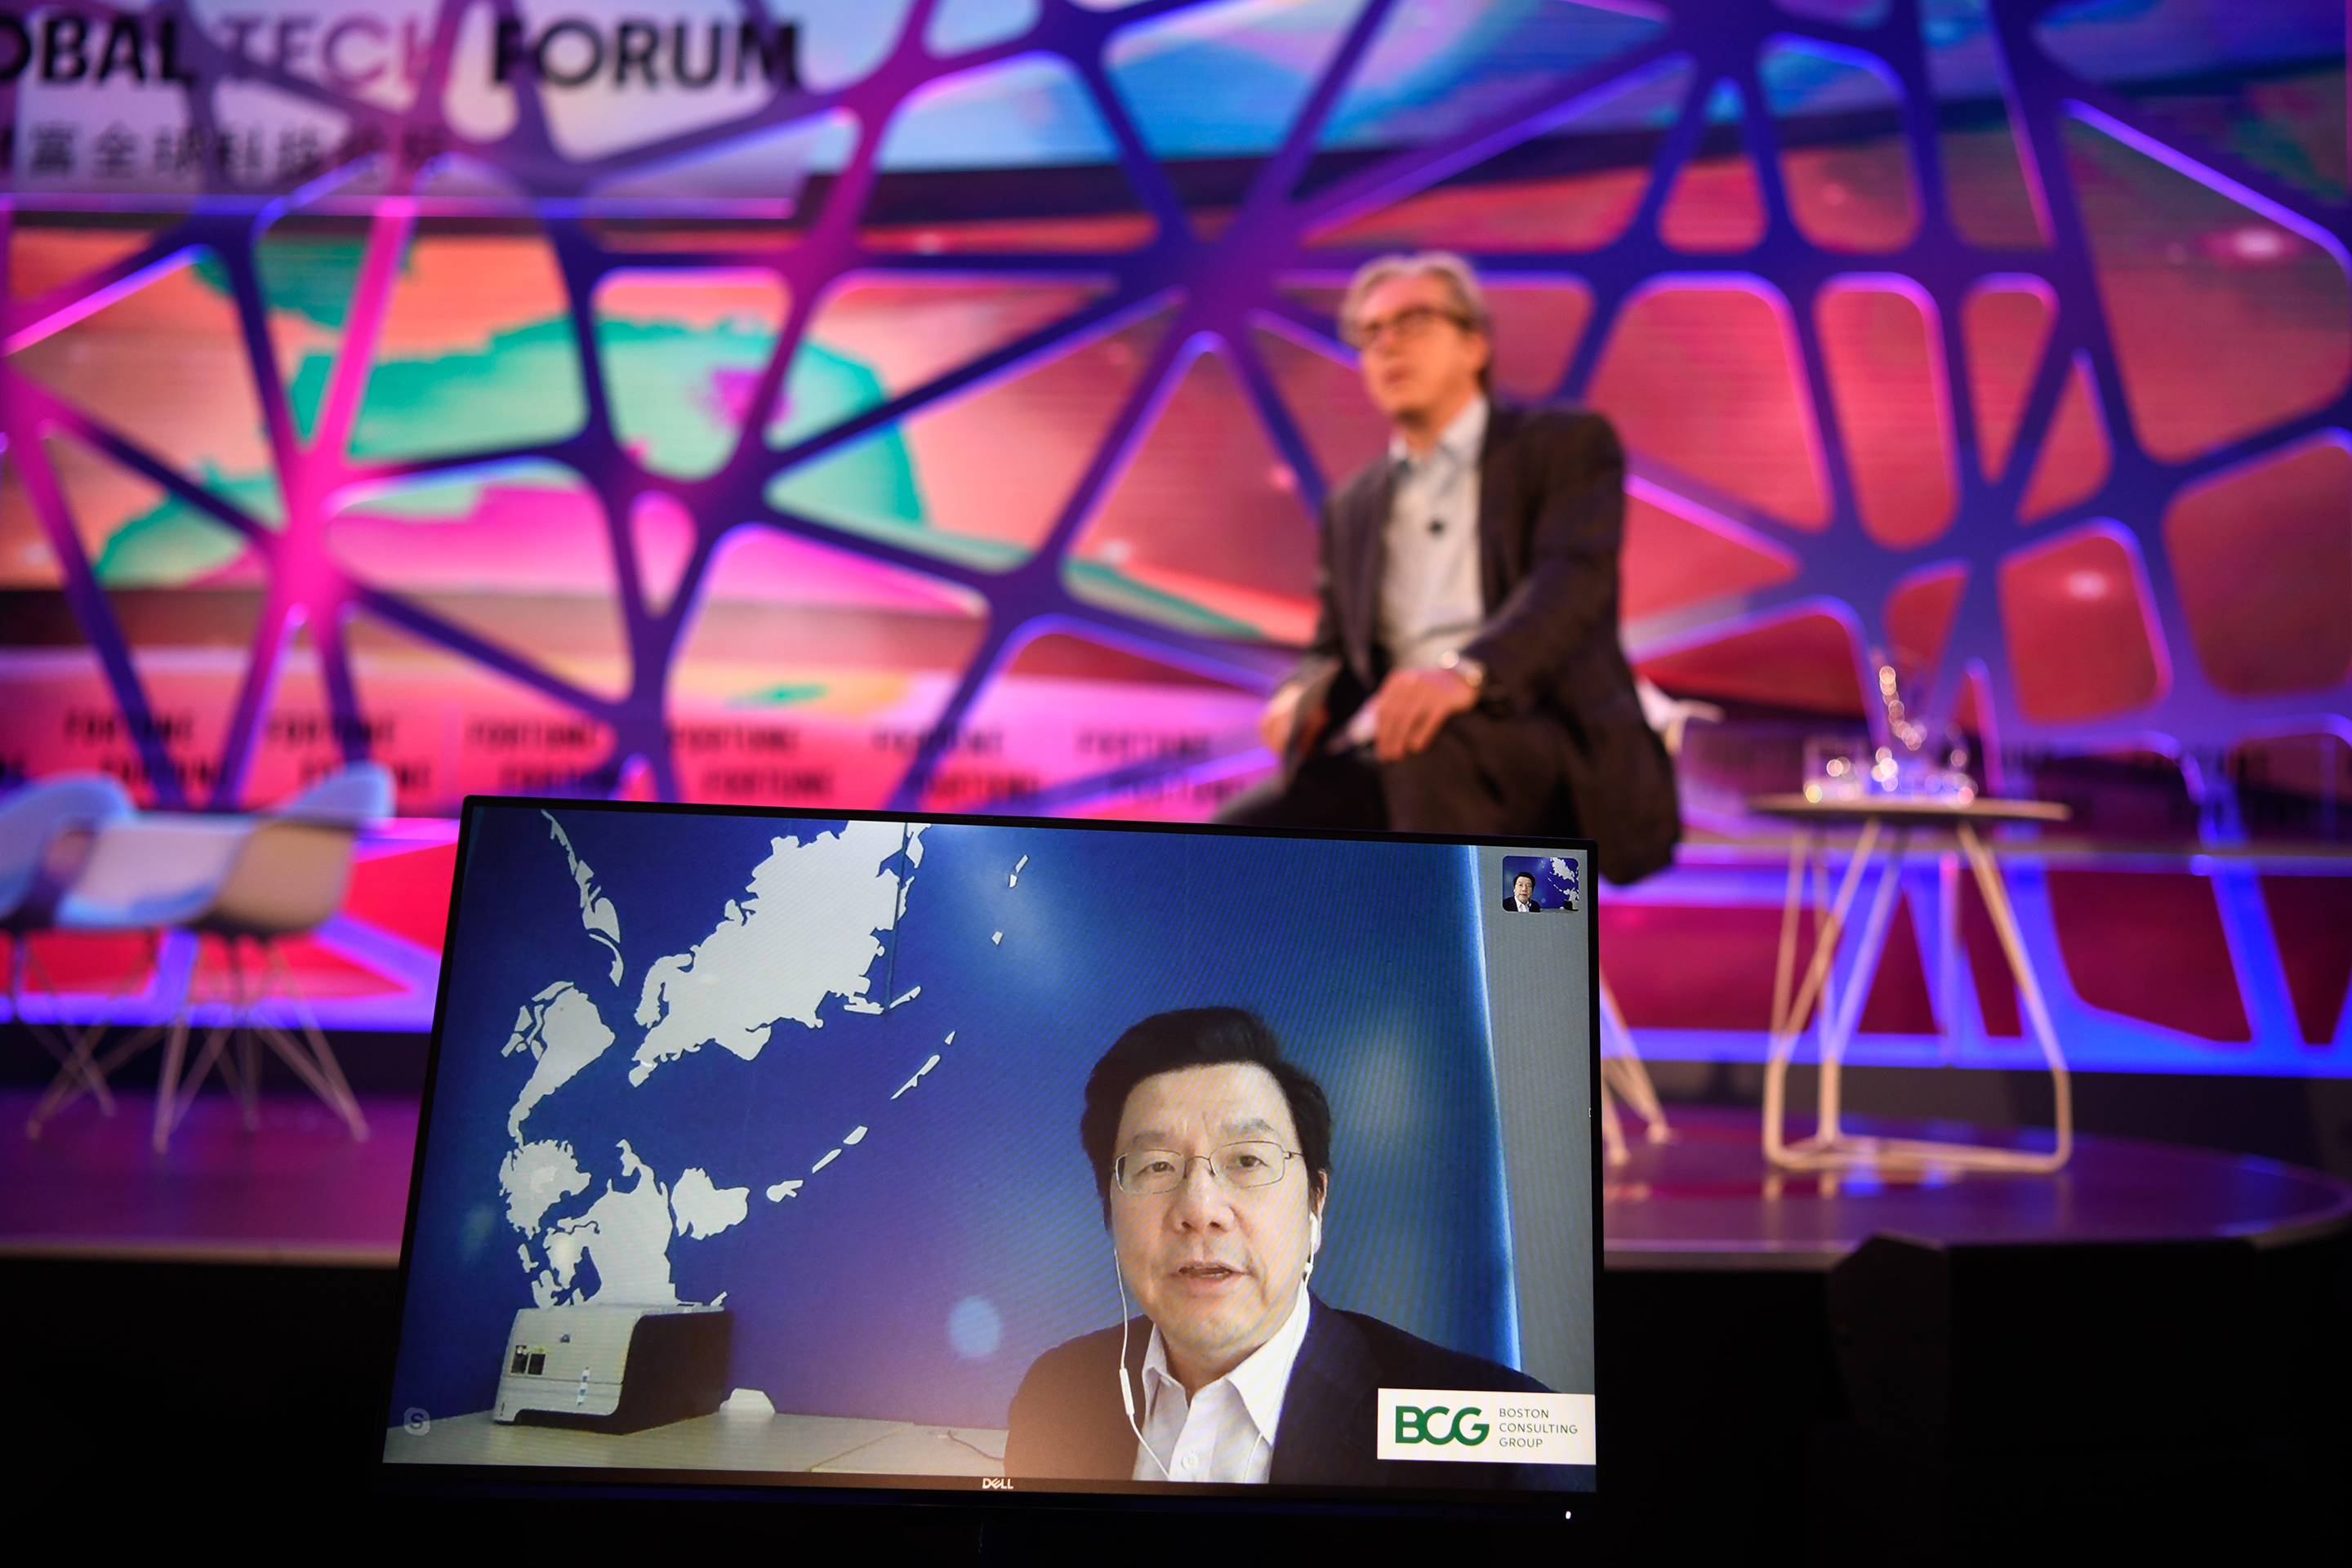 Kai-Fu Lee, fortune global tech forum